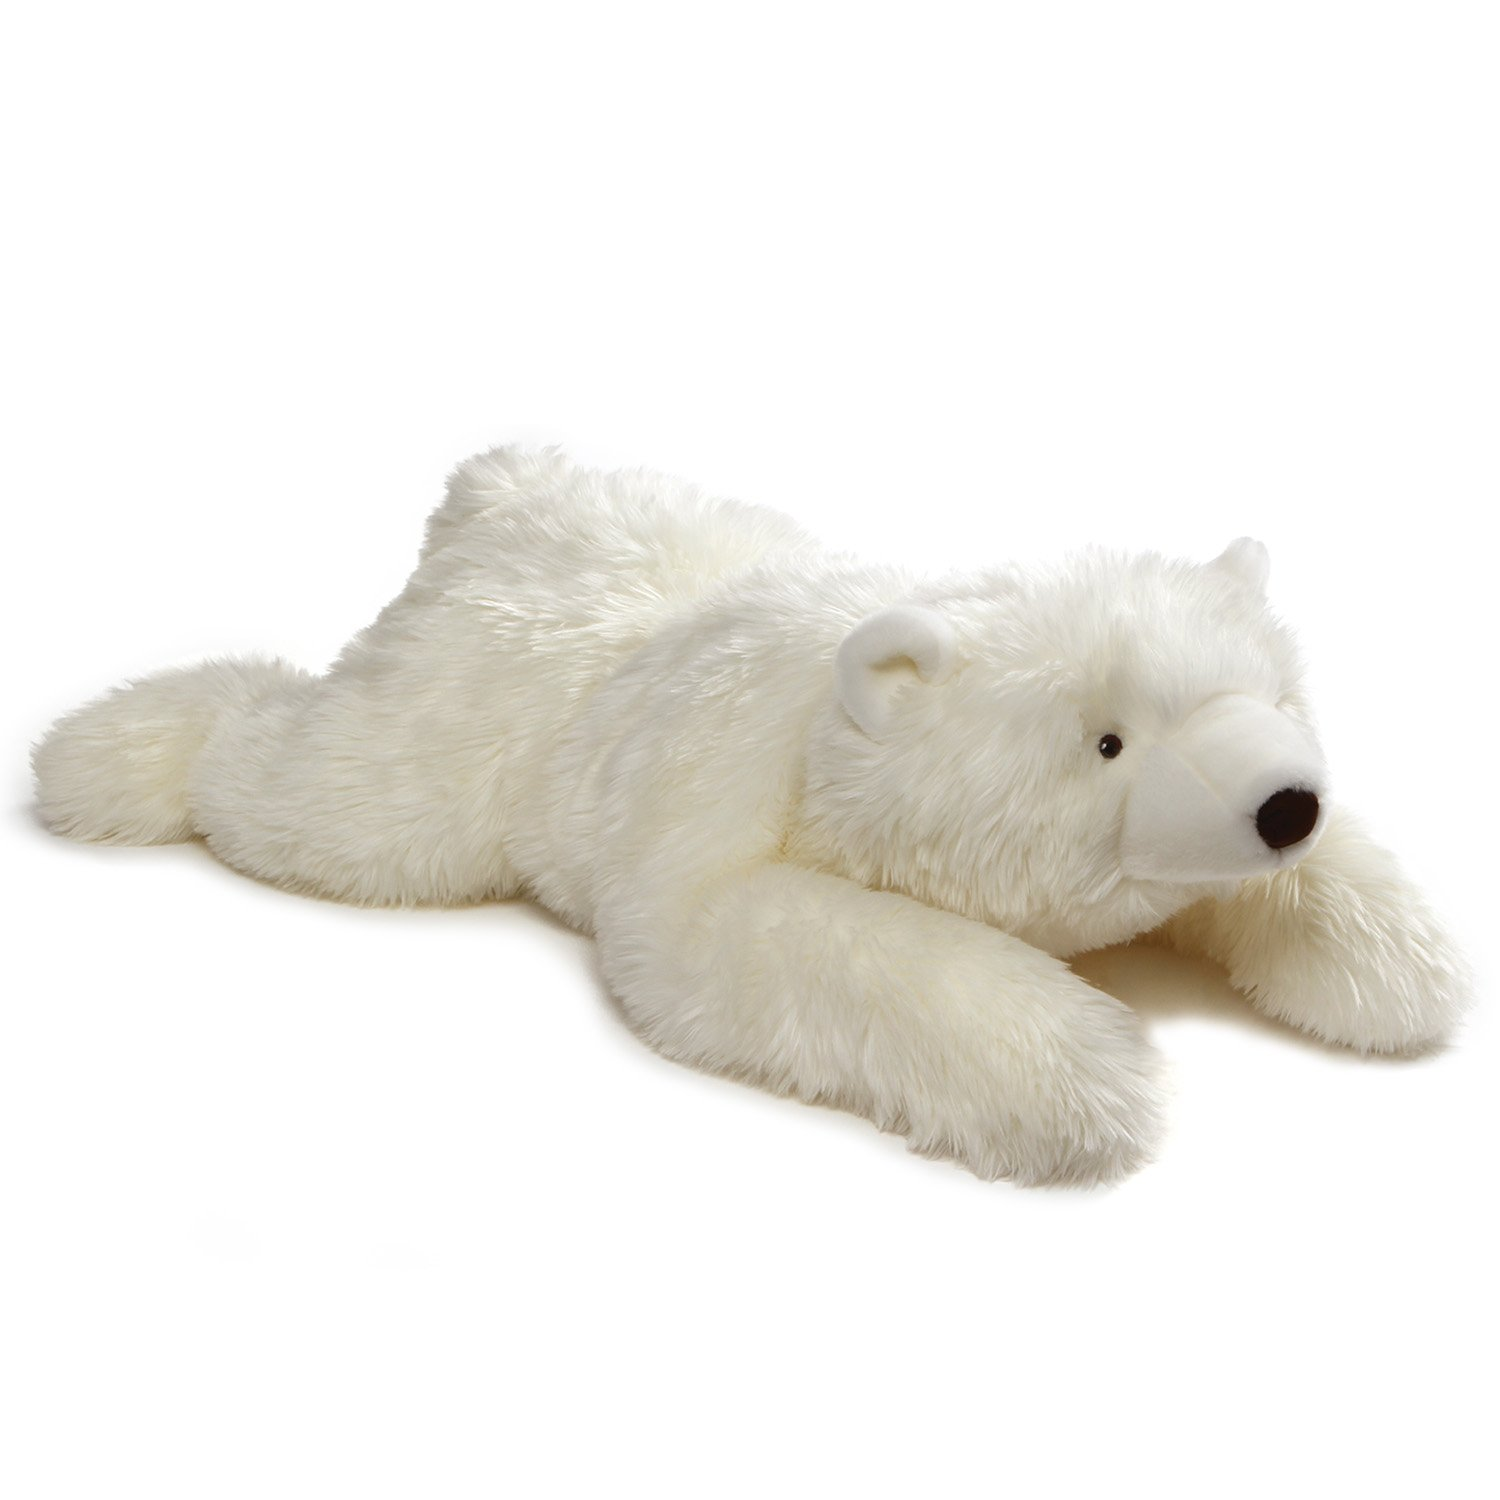 GUND Philip Polar Teddy Bear Jumbo Stuffed Animal Plush, White, 39''